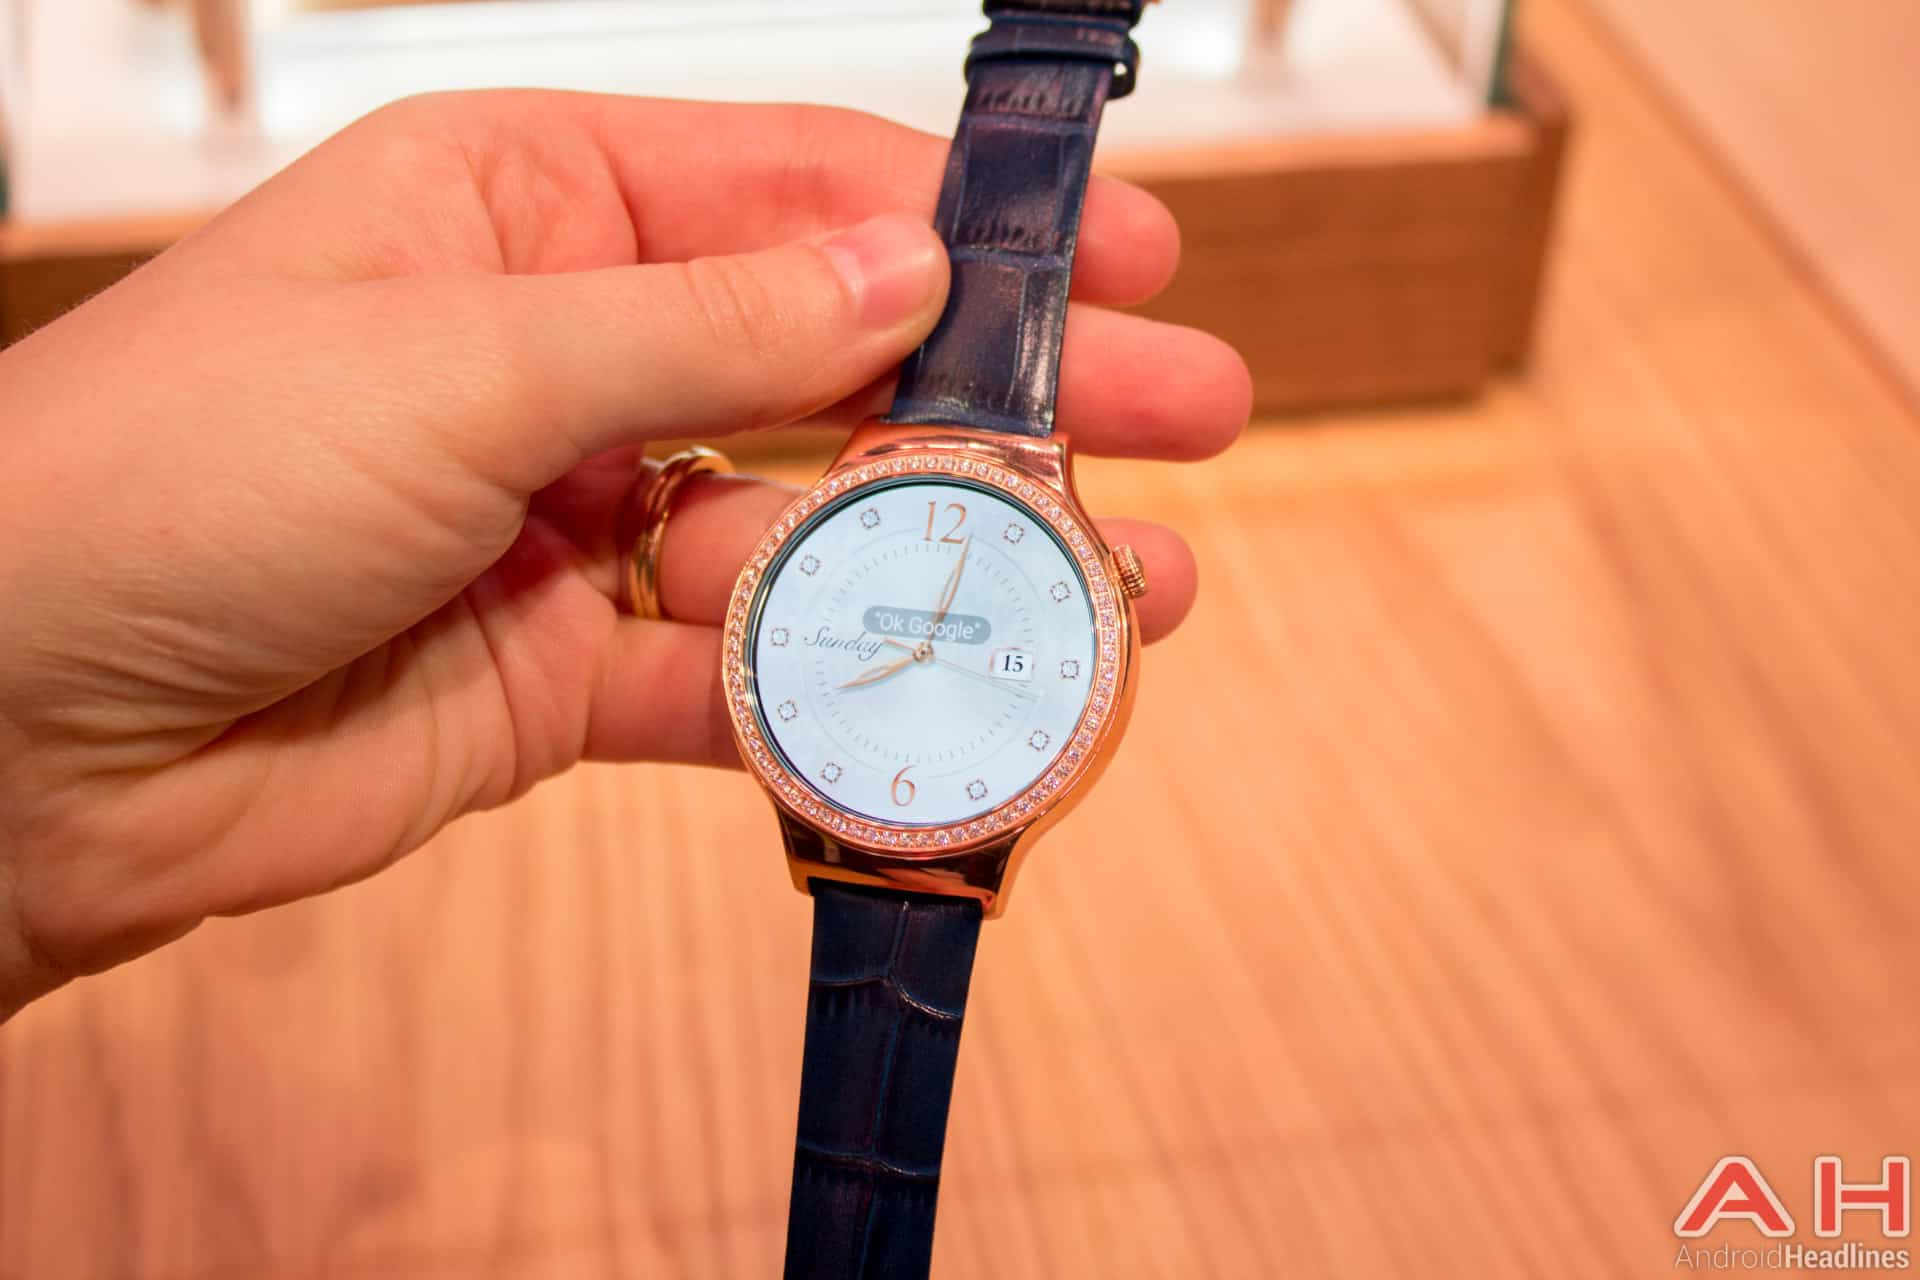 Huawei Watch Jewel AH (3)